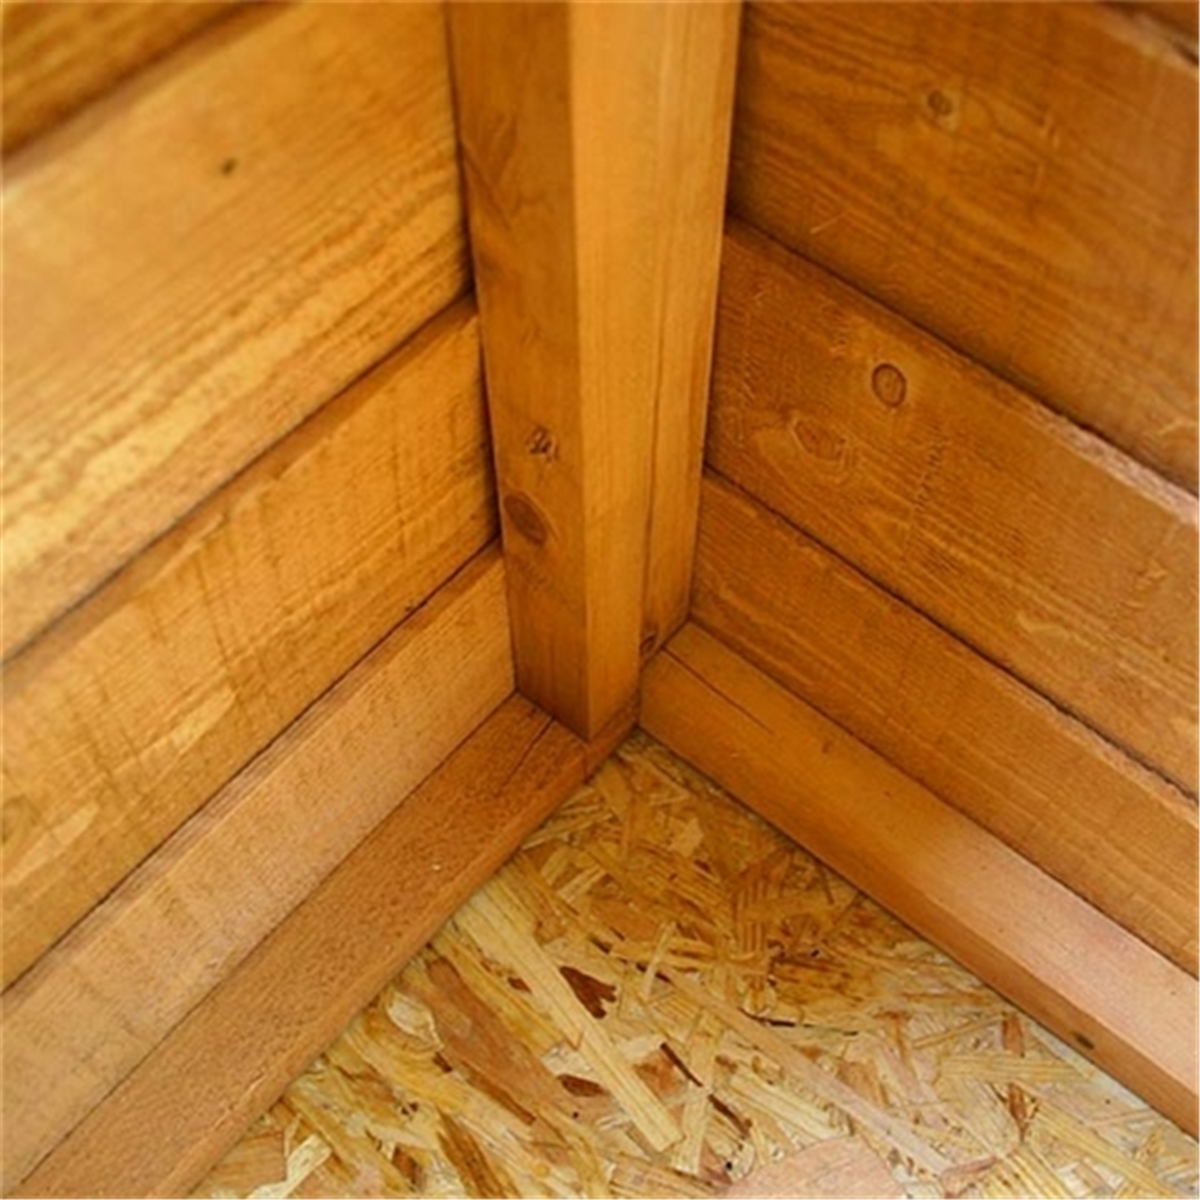 Kiala What Thickness Osb For Shed Floor